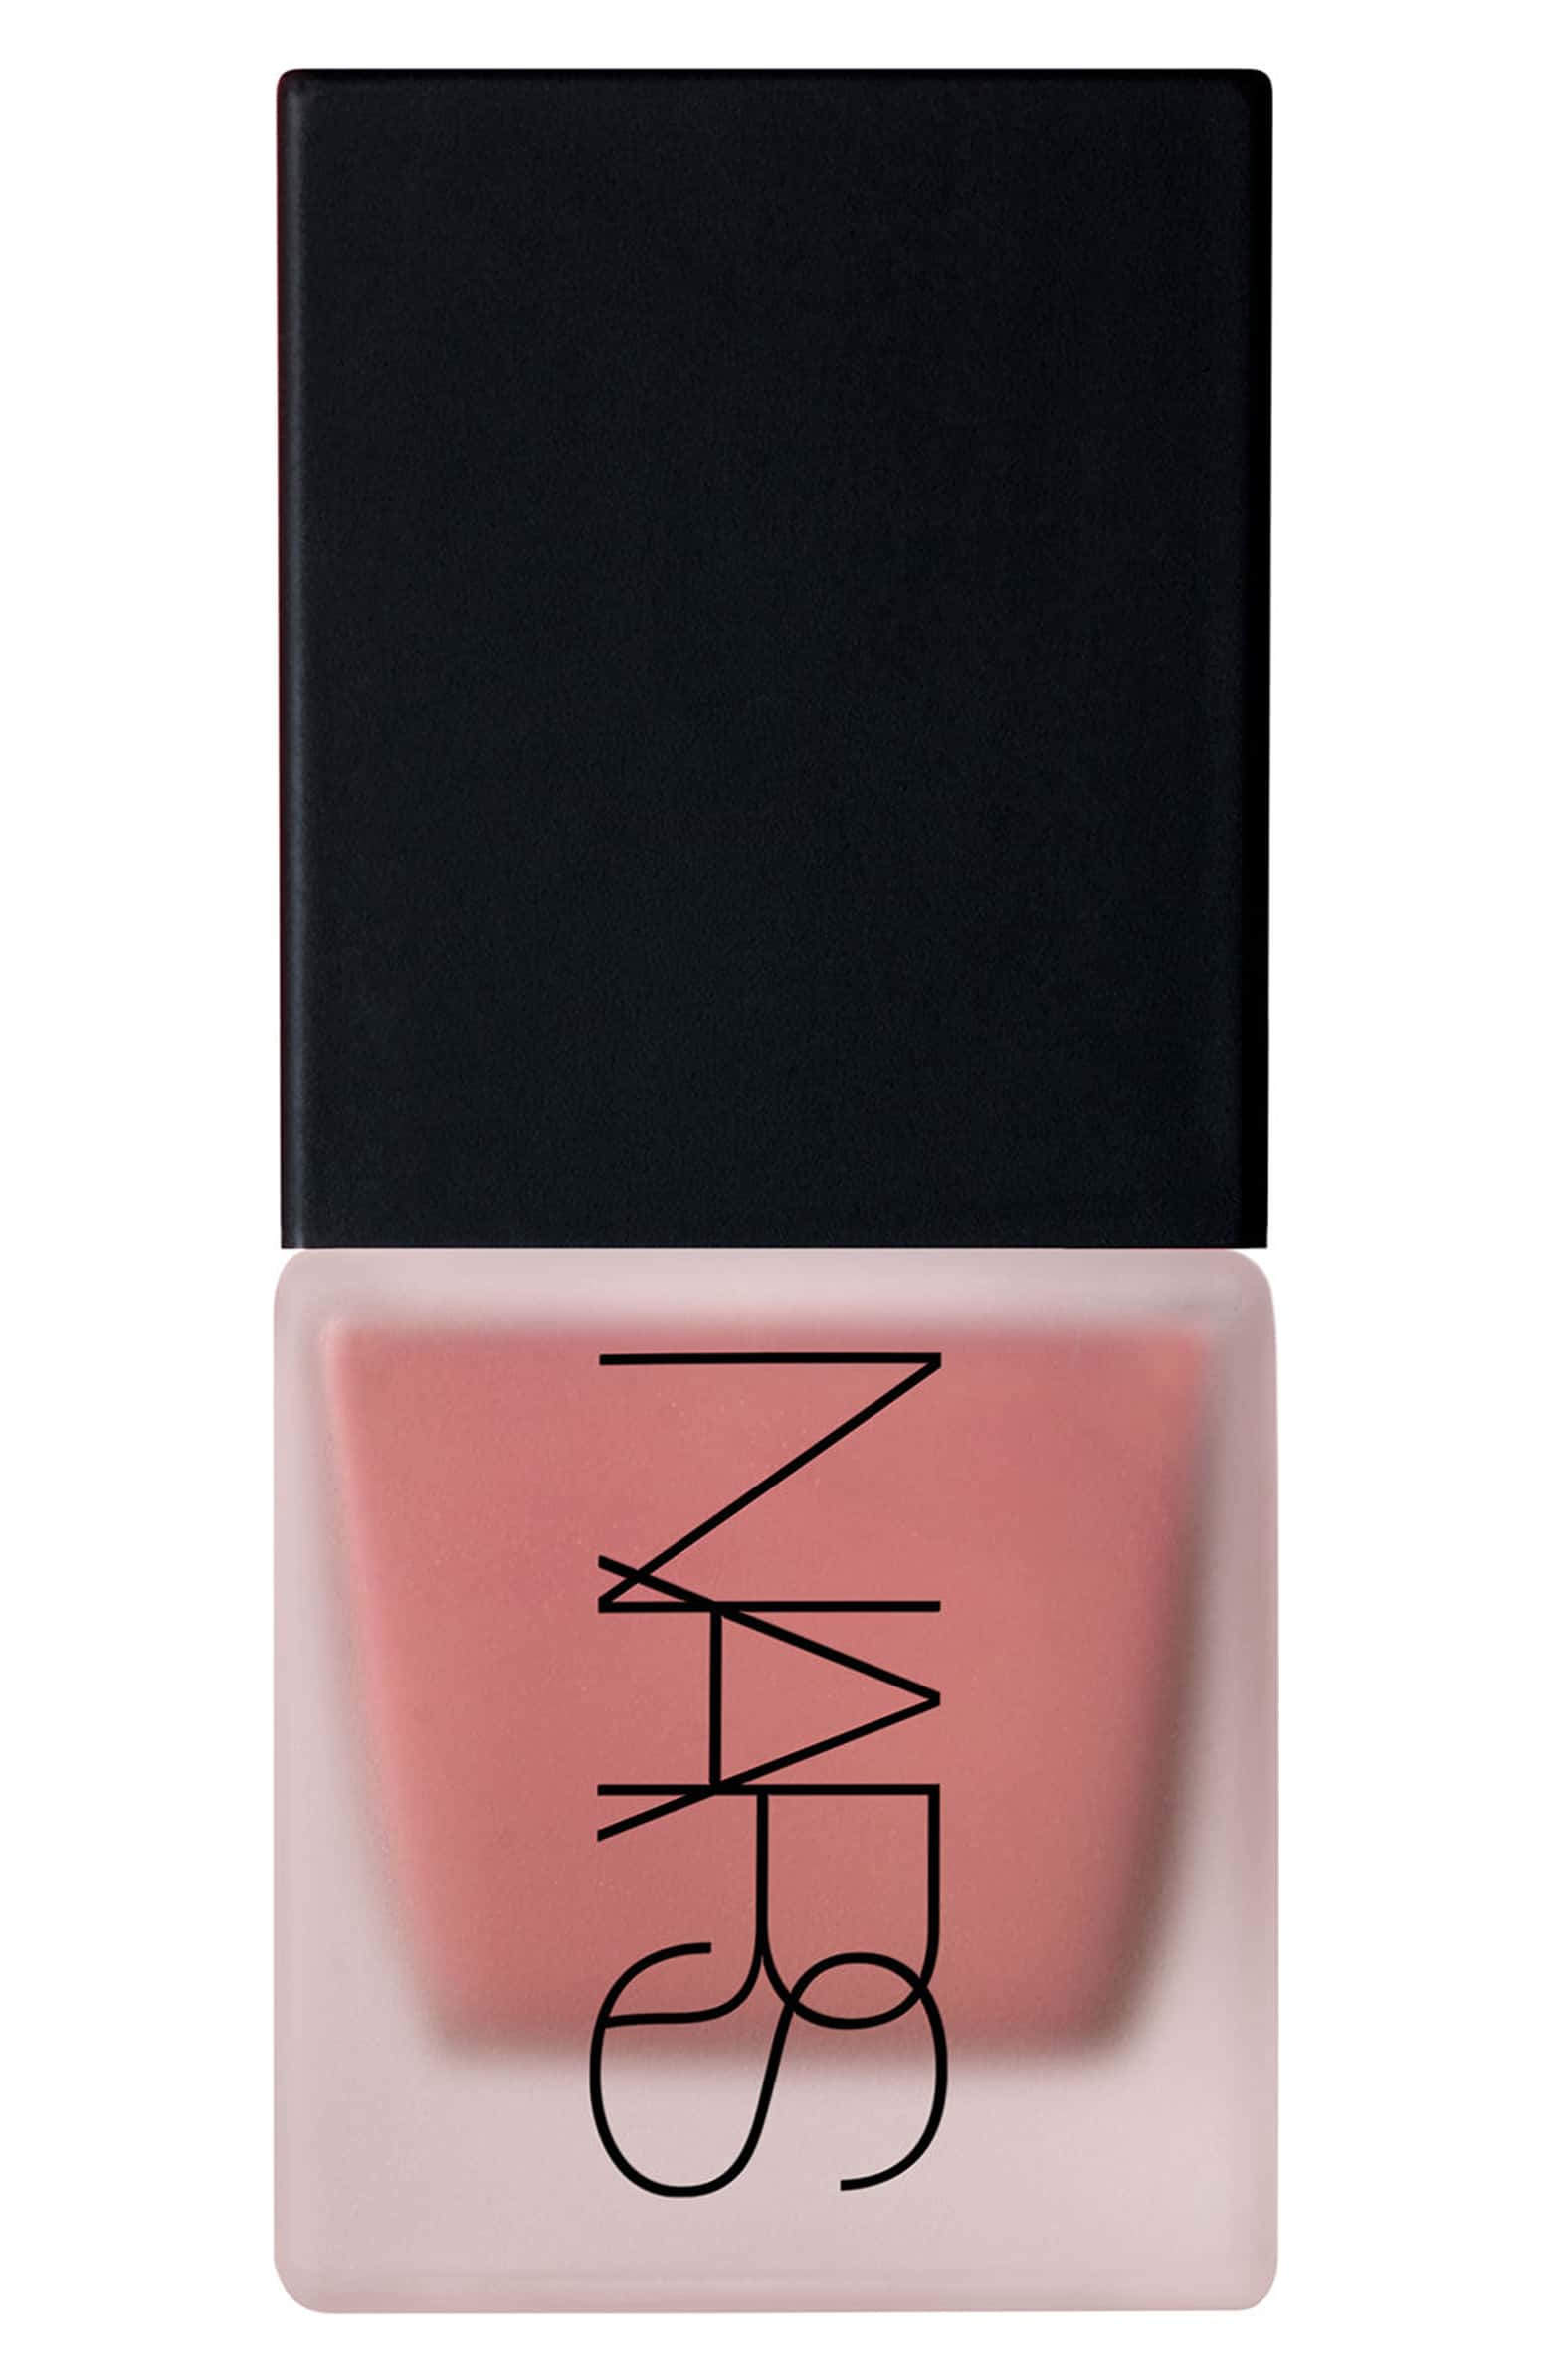 nars-liquid-blush-dolce-vita-sun-kissed-blush